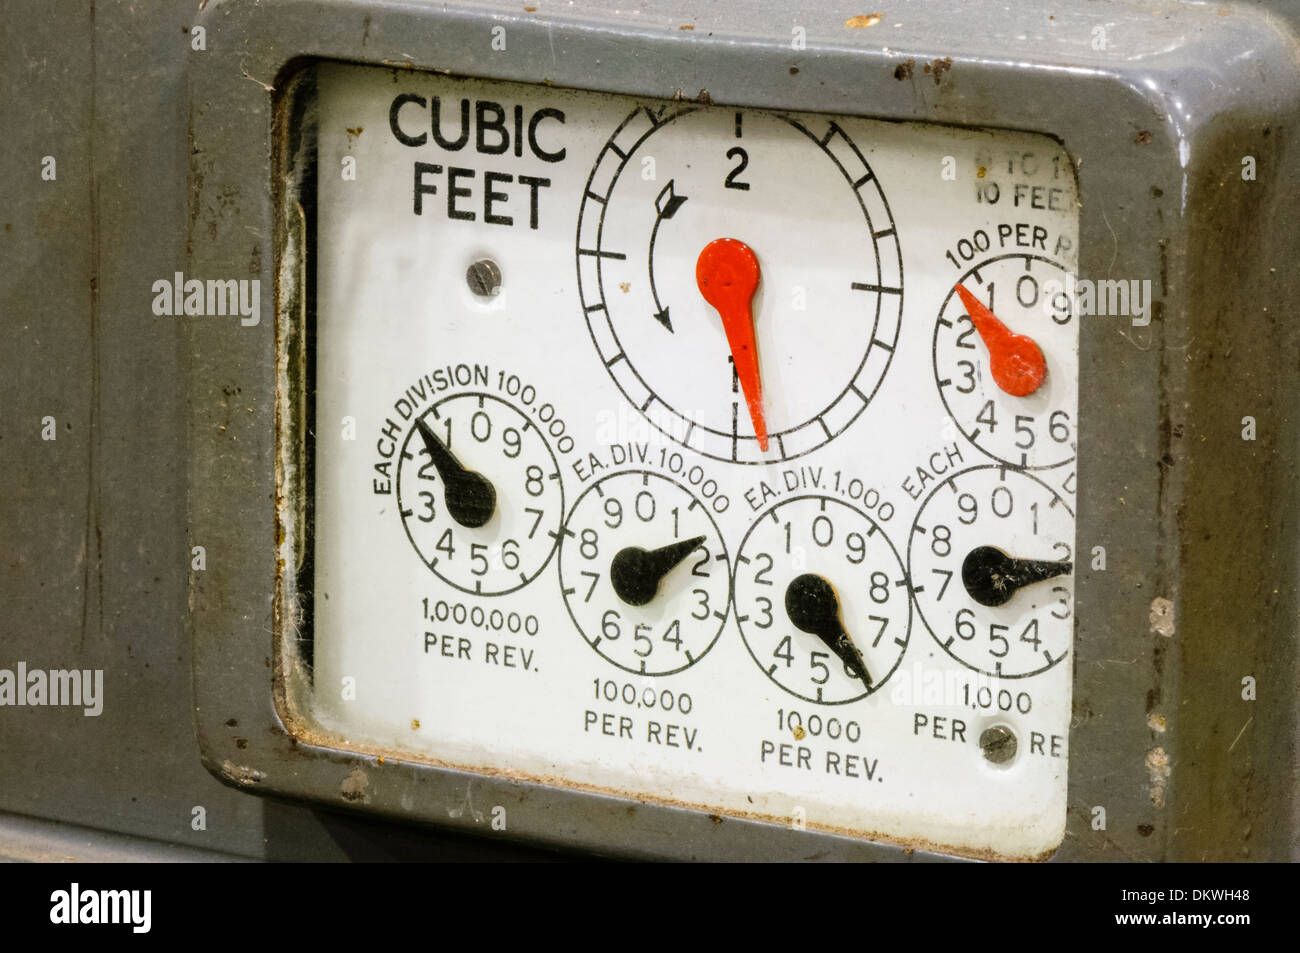 Close-up of dials on an old fashioned gas meter from the 1920s/1930s - Stock Image